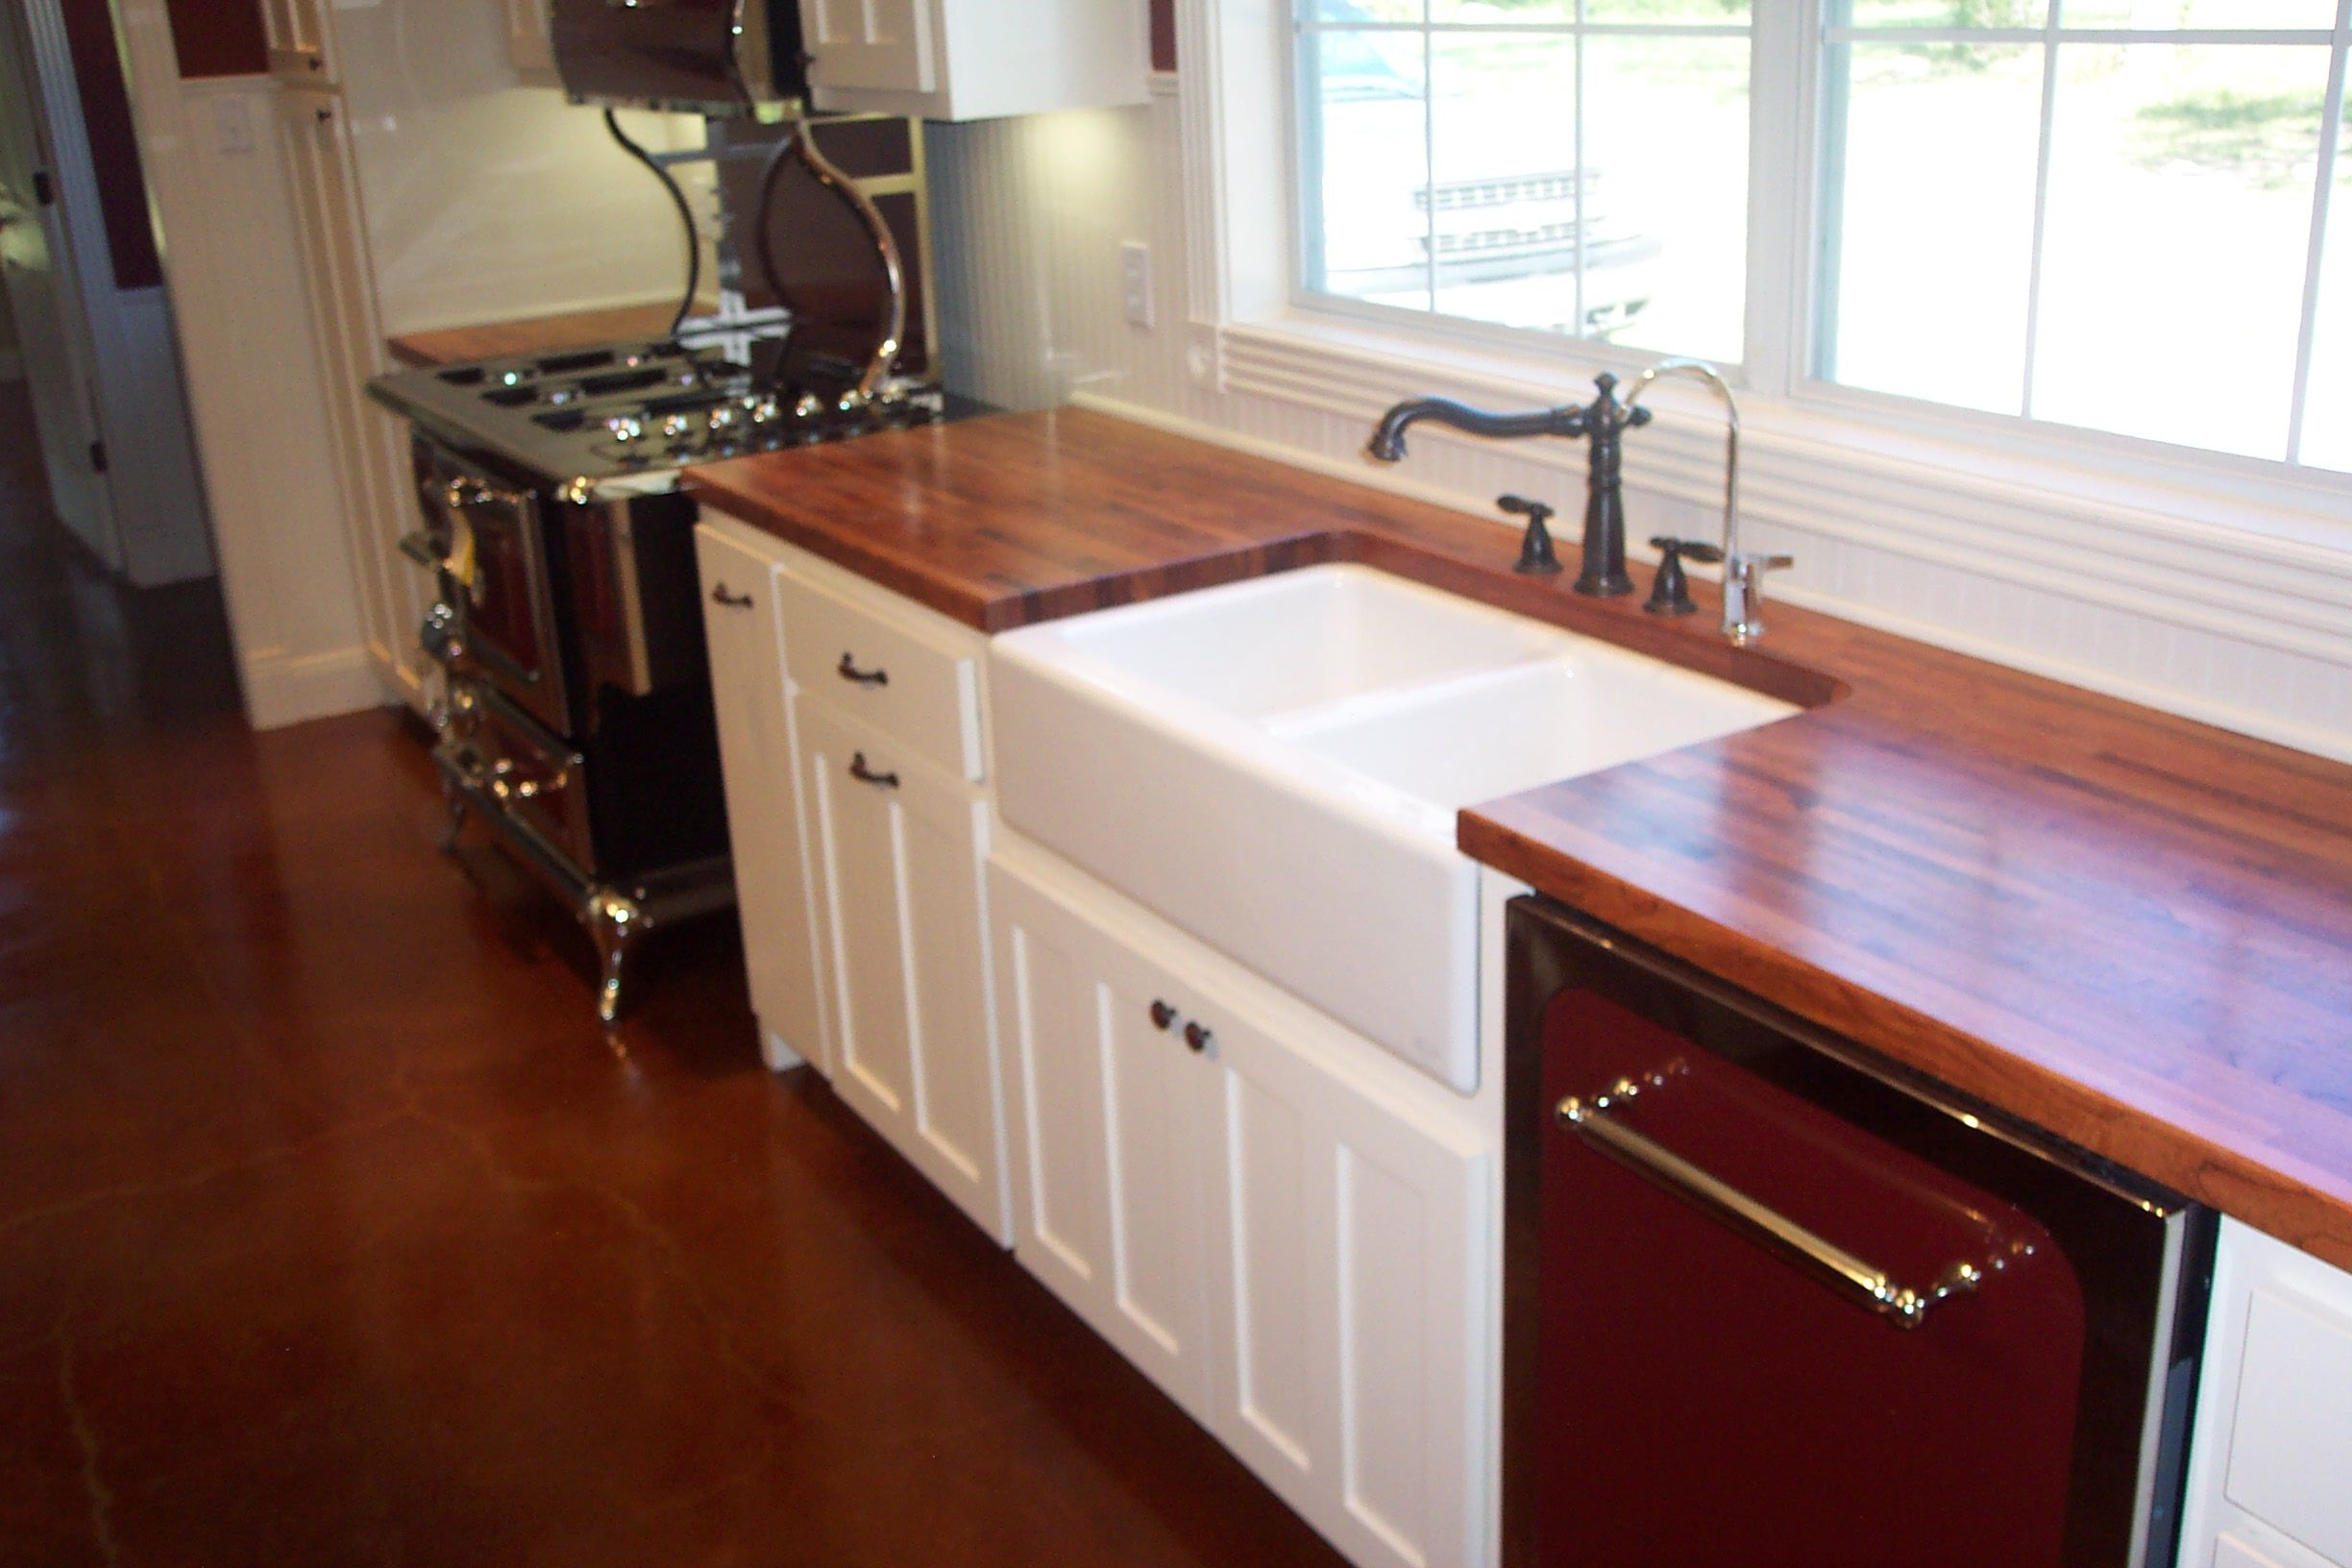 Mesquite Counter Tops Farmer S Sink And An Awesome Stove Great Kitchen Farmers Sink Countertops Kitchen